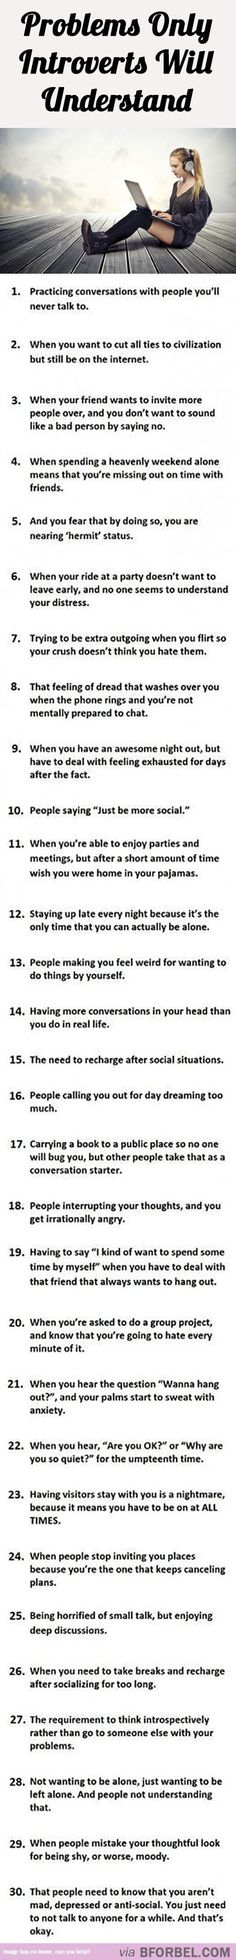 Most of these are dead on....some don't apply.....not a partier - 30 Problems Only Introverts Will Understand.